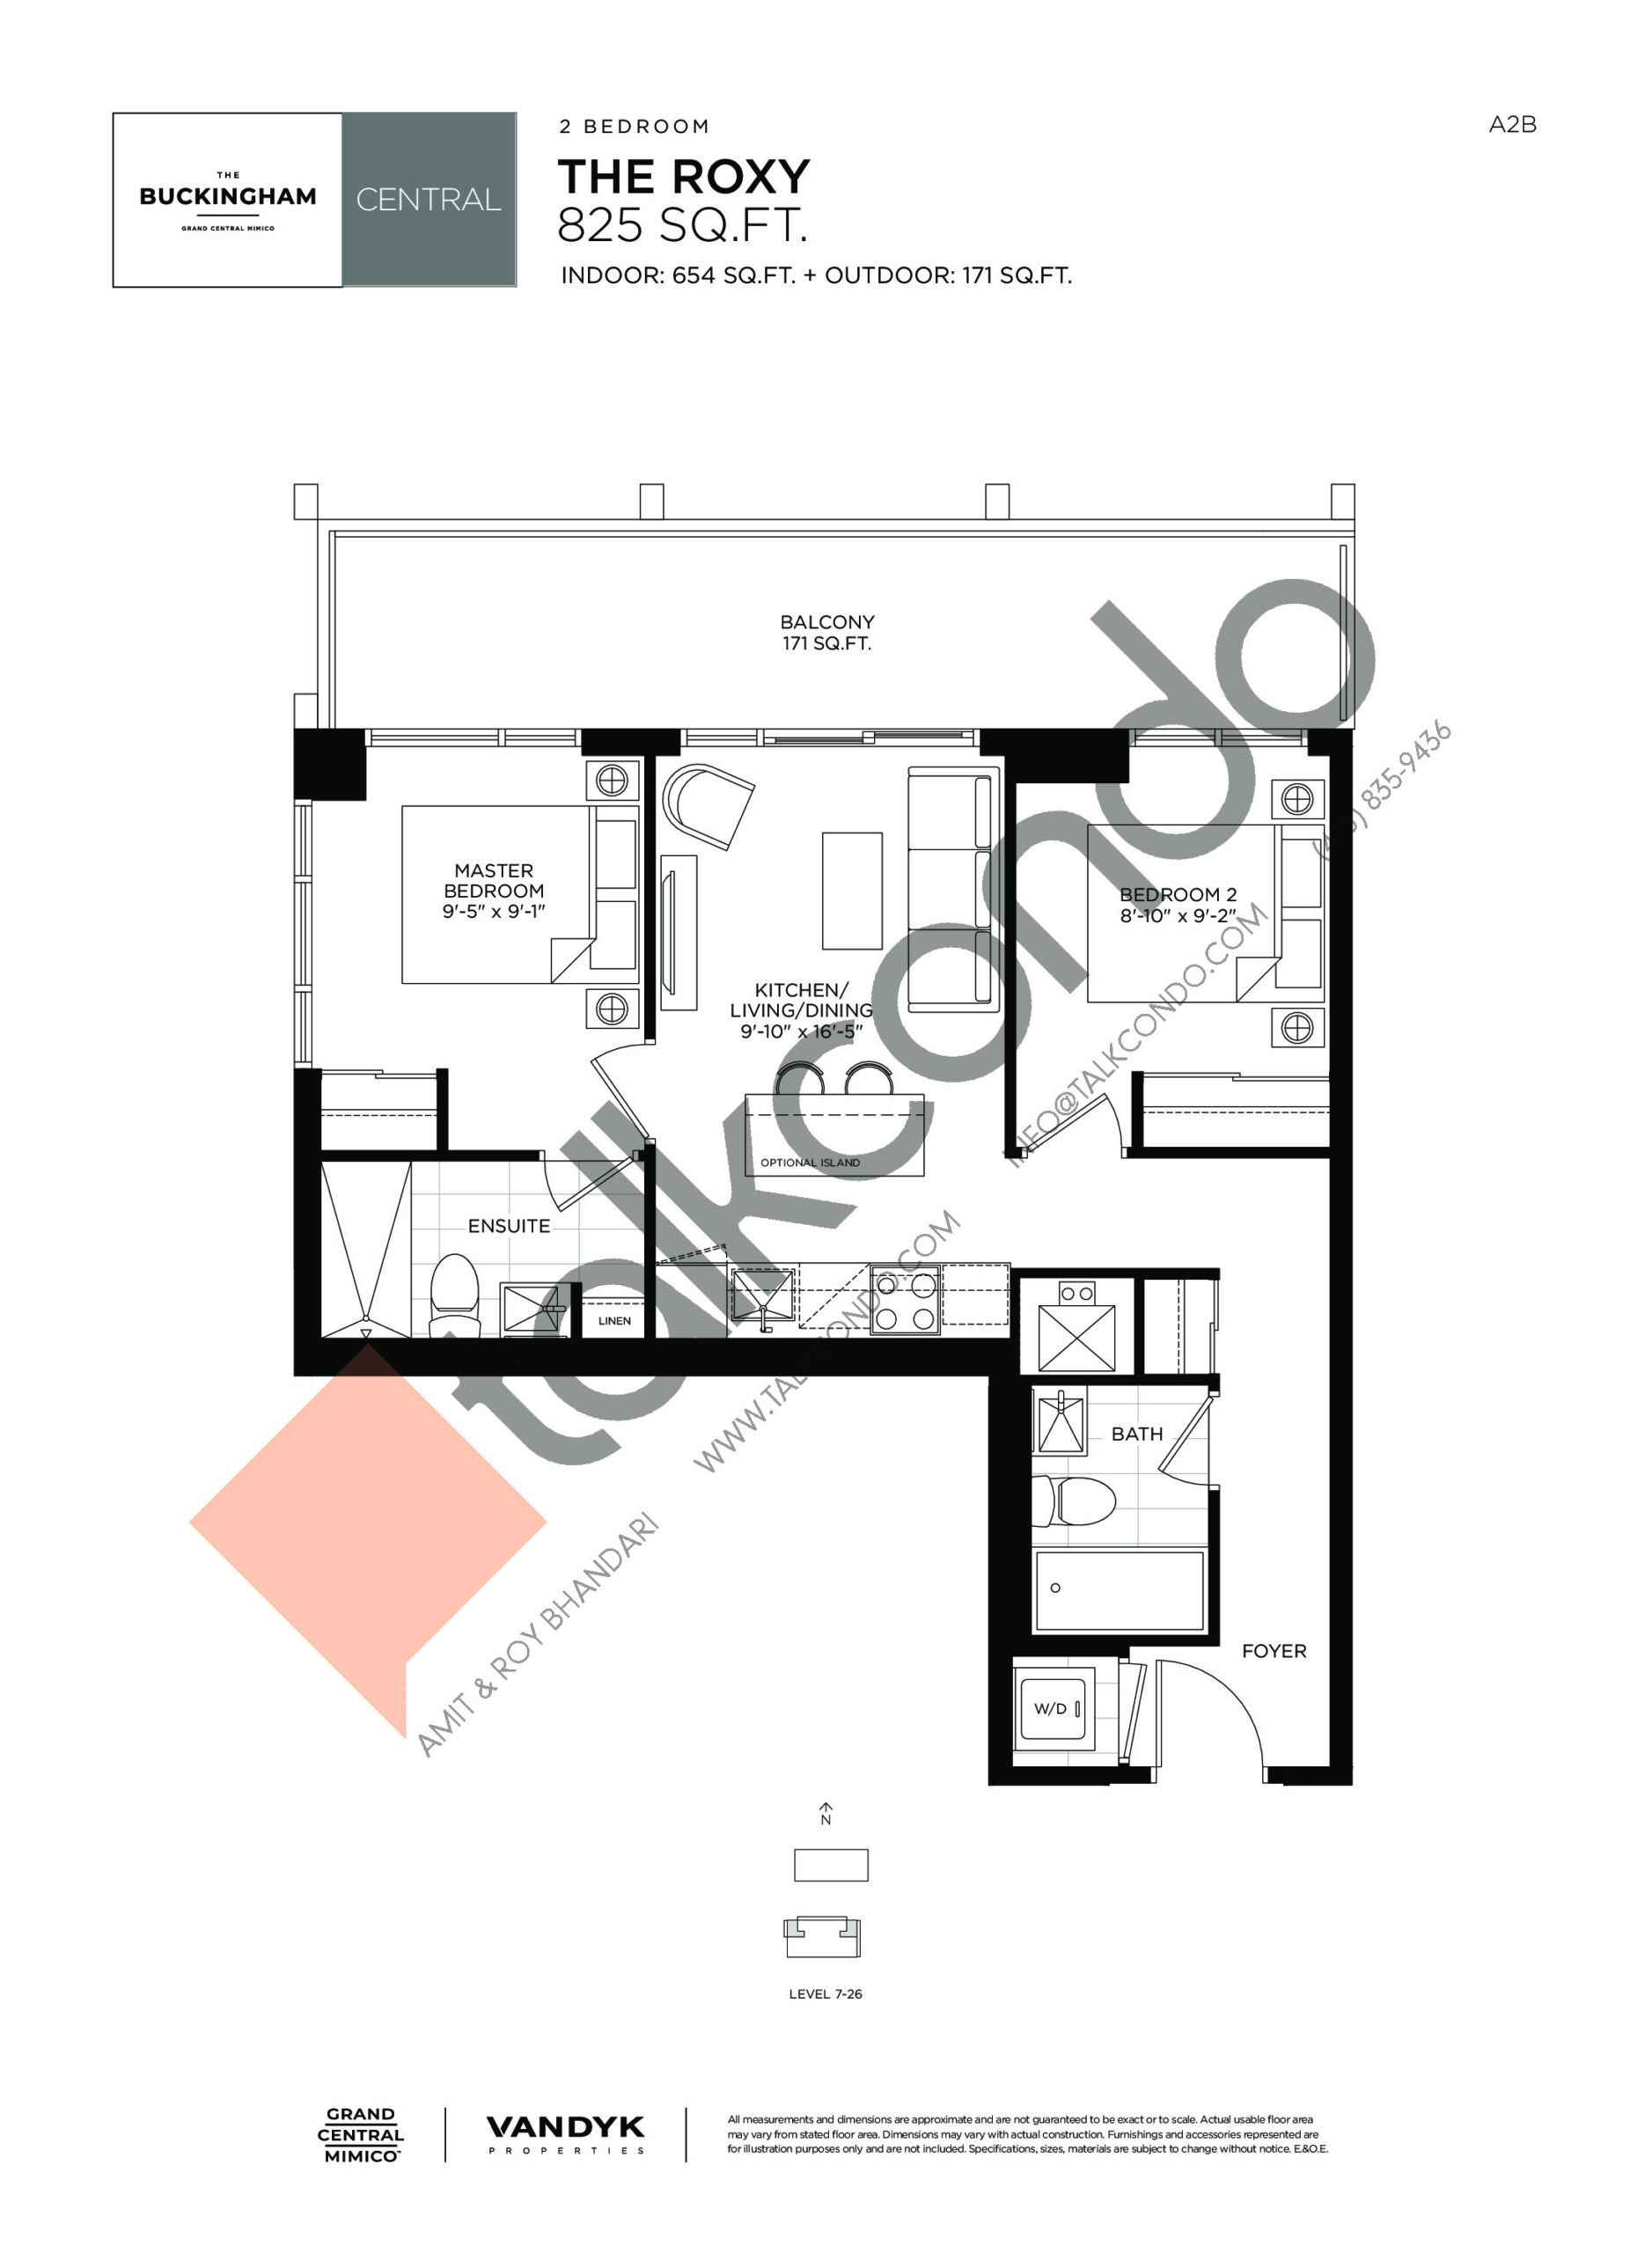 The Roxy Floor Plan at Grand Central Mimico Condos - 654 sq.ft